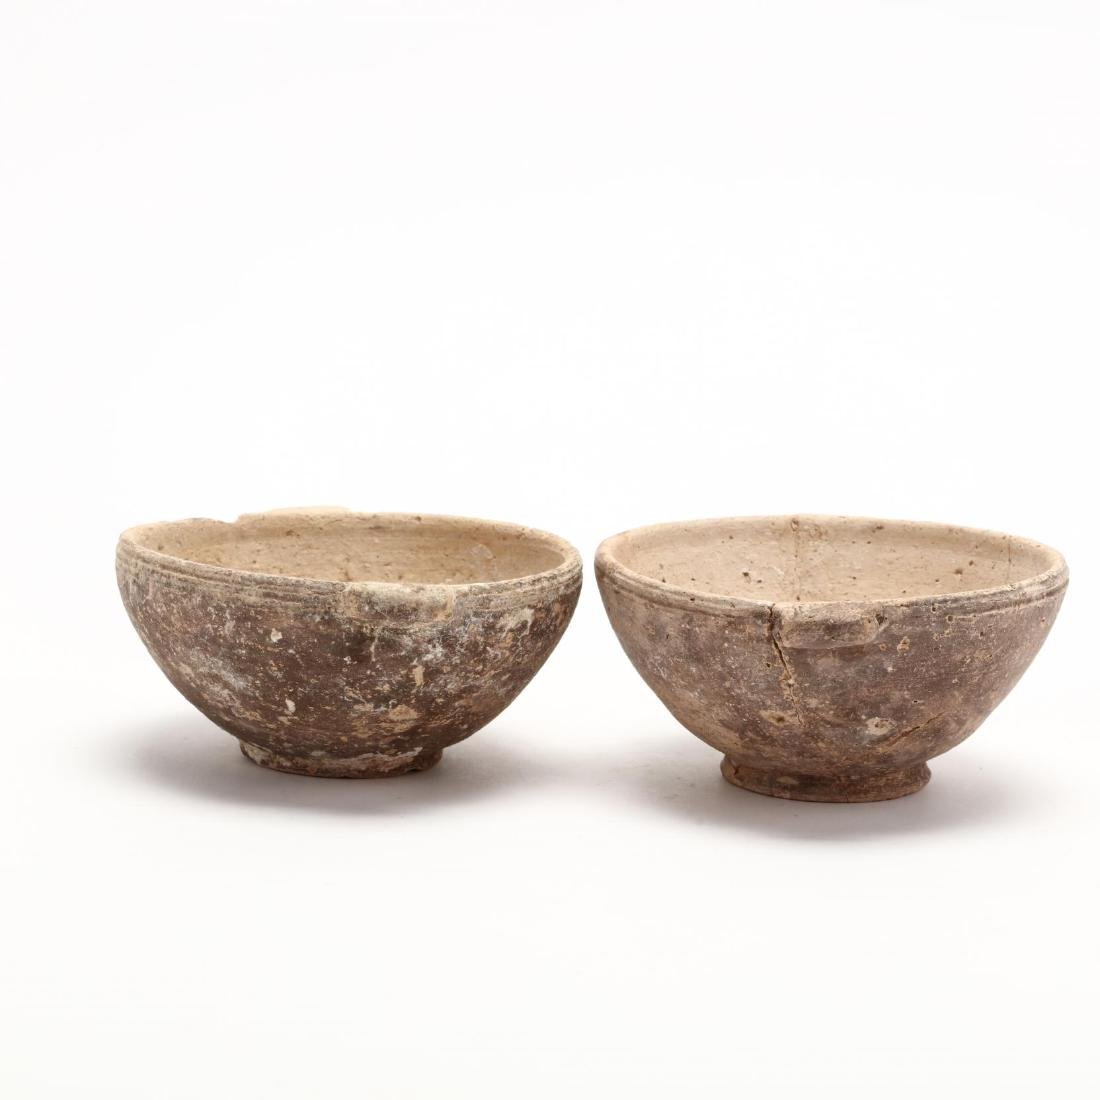 Two Cypriot Hellenistic White Ware Bowls, Ex. Morris - 6